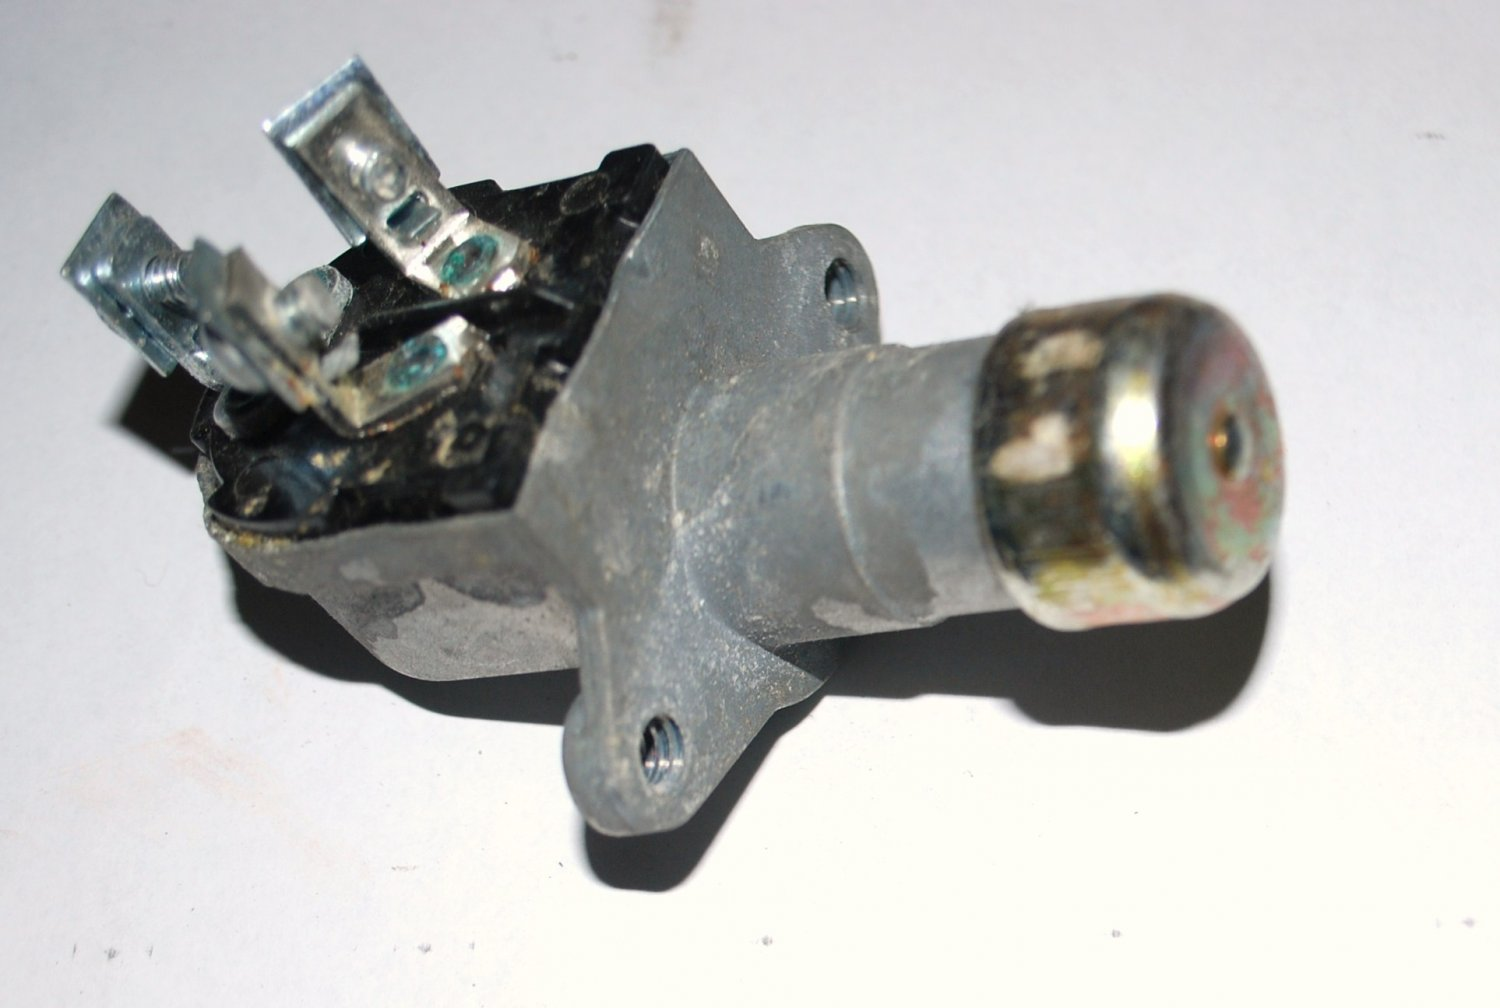 FORD DIMMER SWITCH 1956 1955 1954 1953 1952 1951 1950 1949 1948 1947 1946